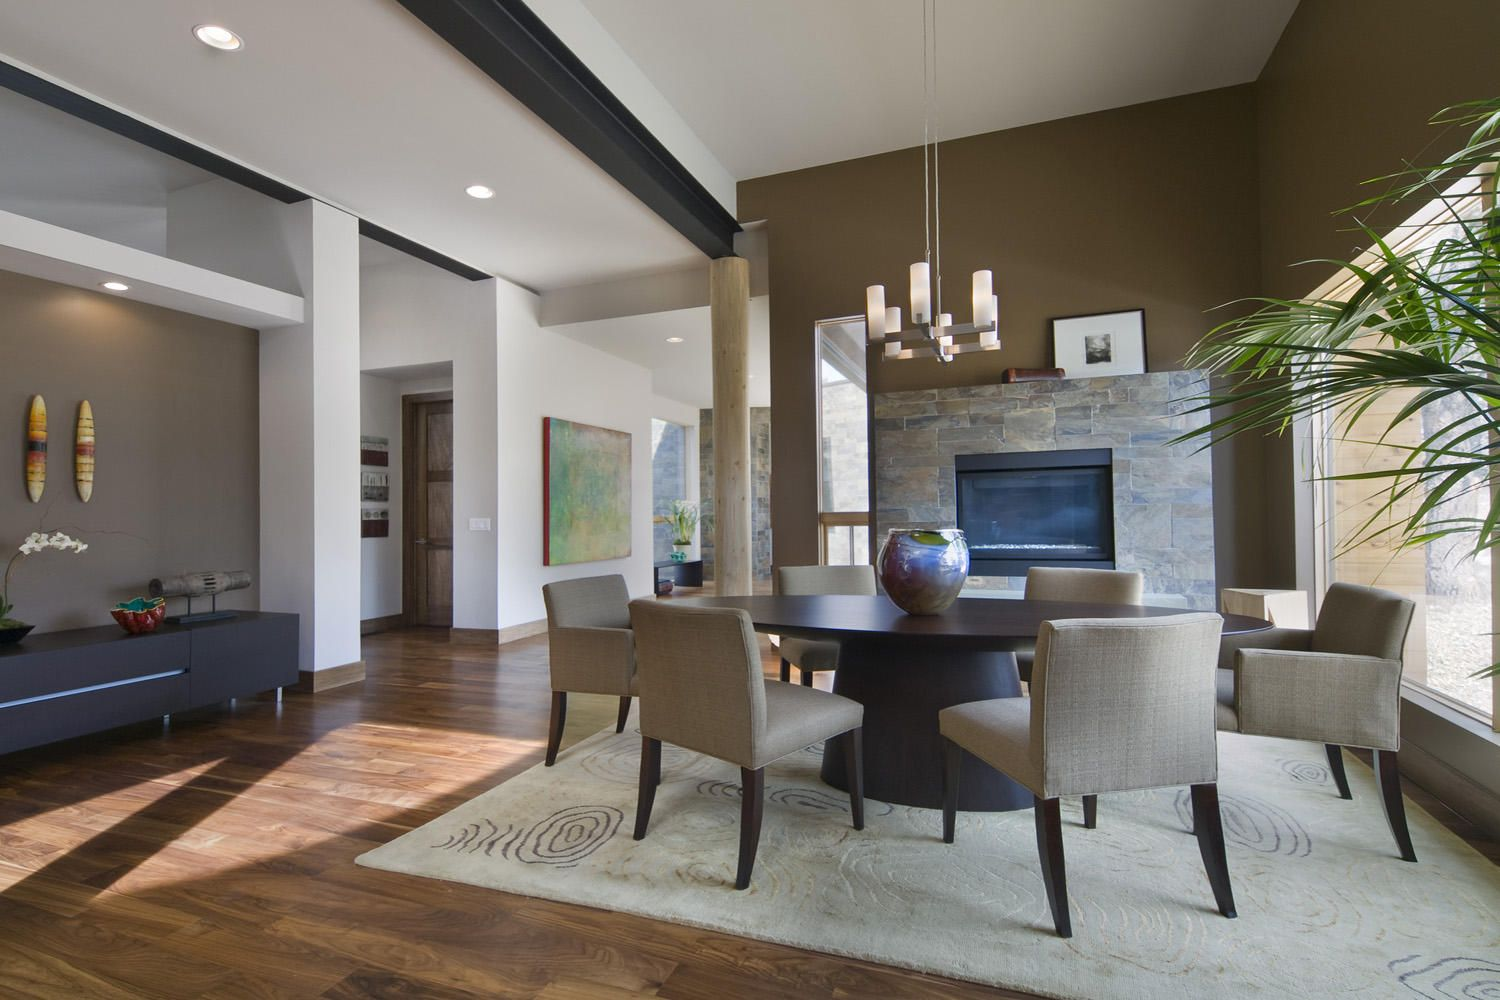 Modern home interior colors meacham residence by entasis group  for the home  pinterest